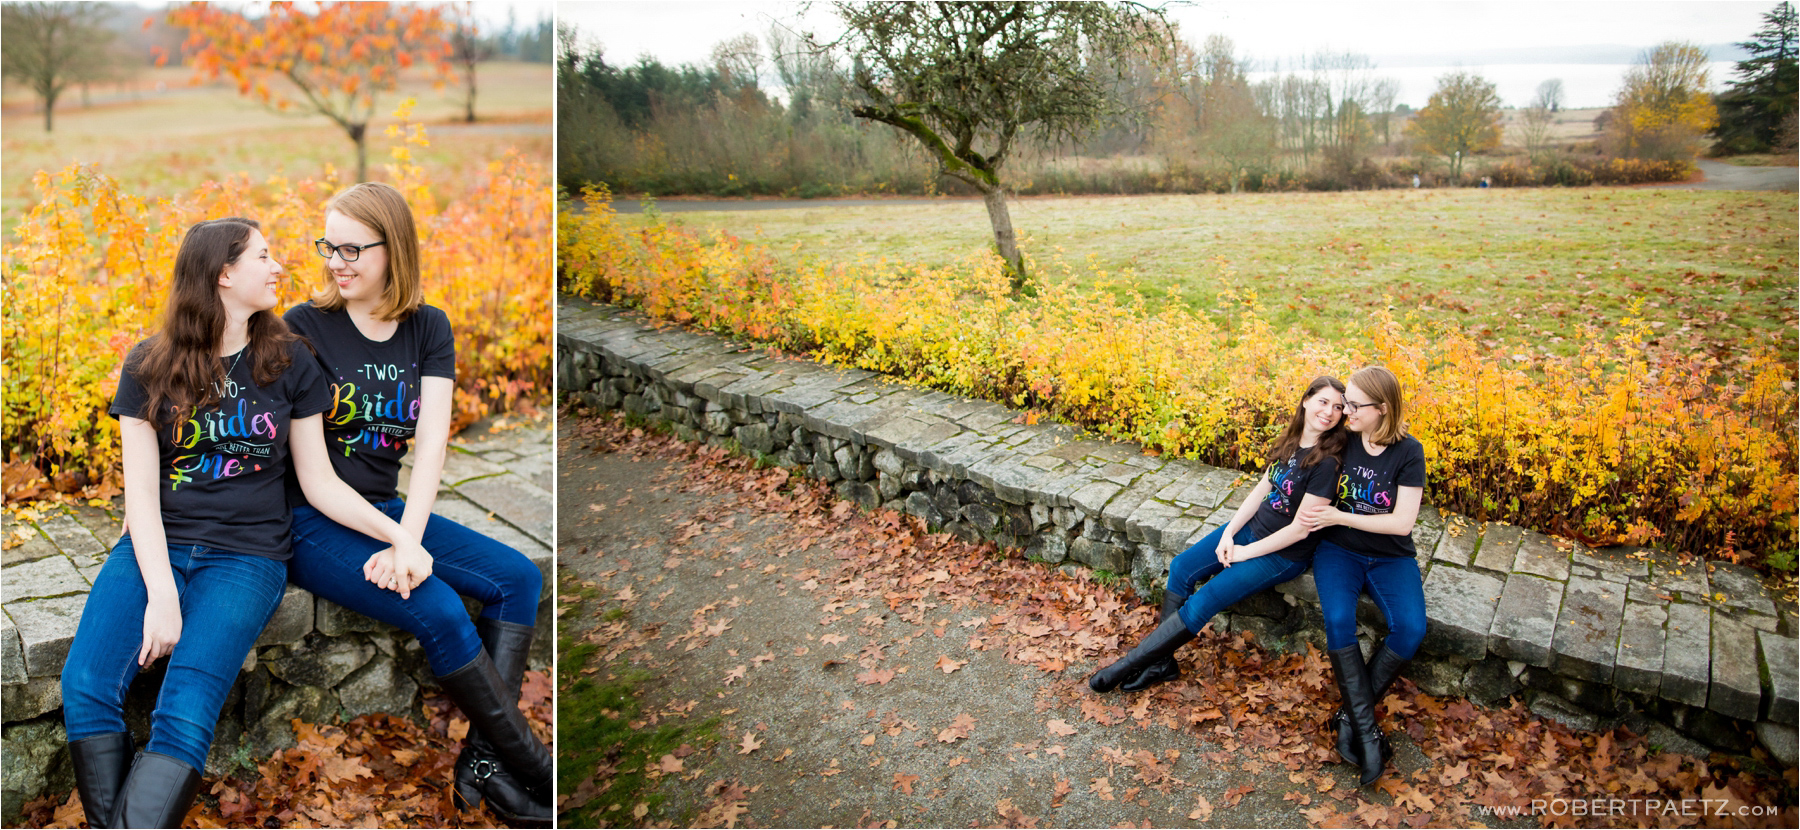 A fall engagement photography session amongst the orange and yellow leaves of Discovery Park in Seattle, photographed by the destination wedding photographer, Robert Paetz.